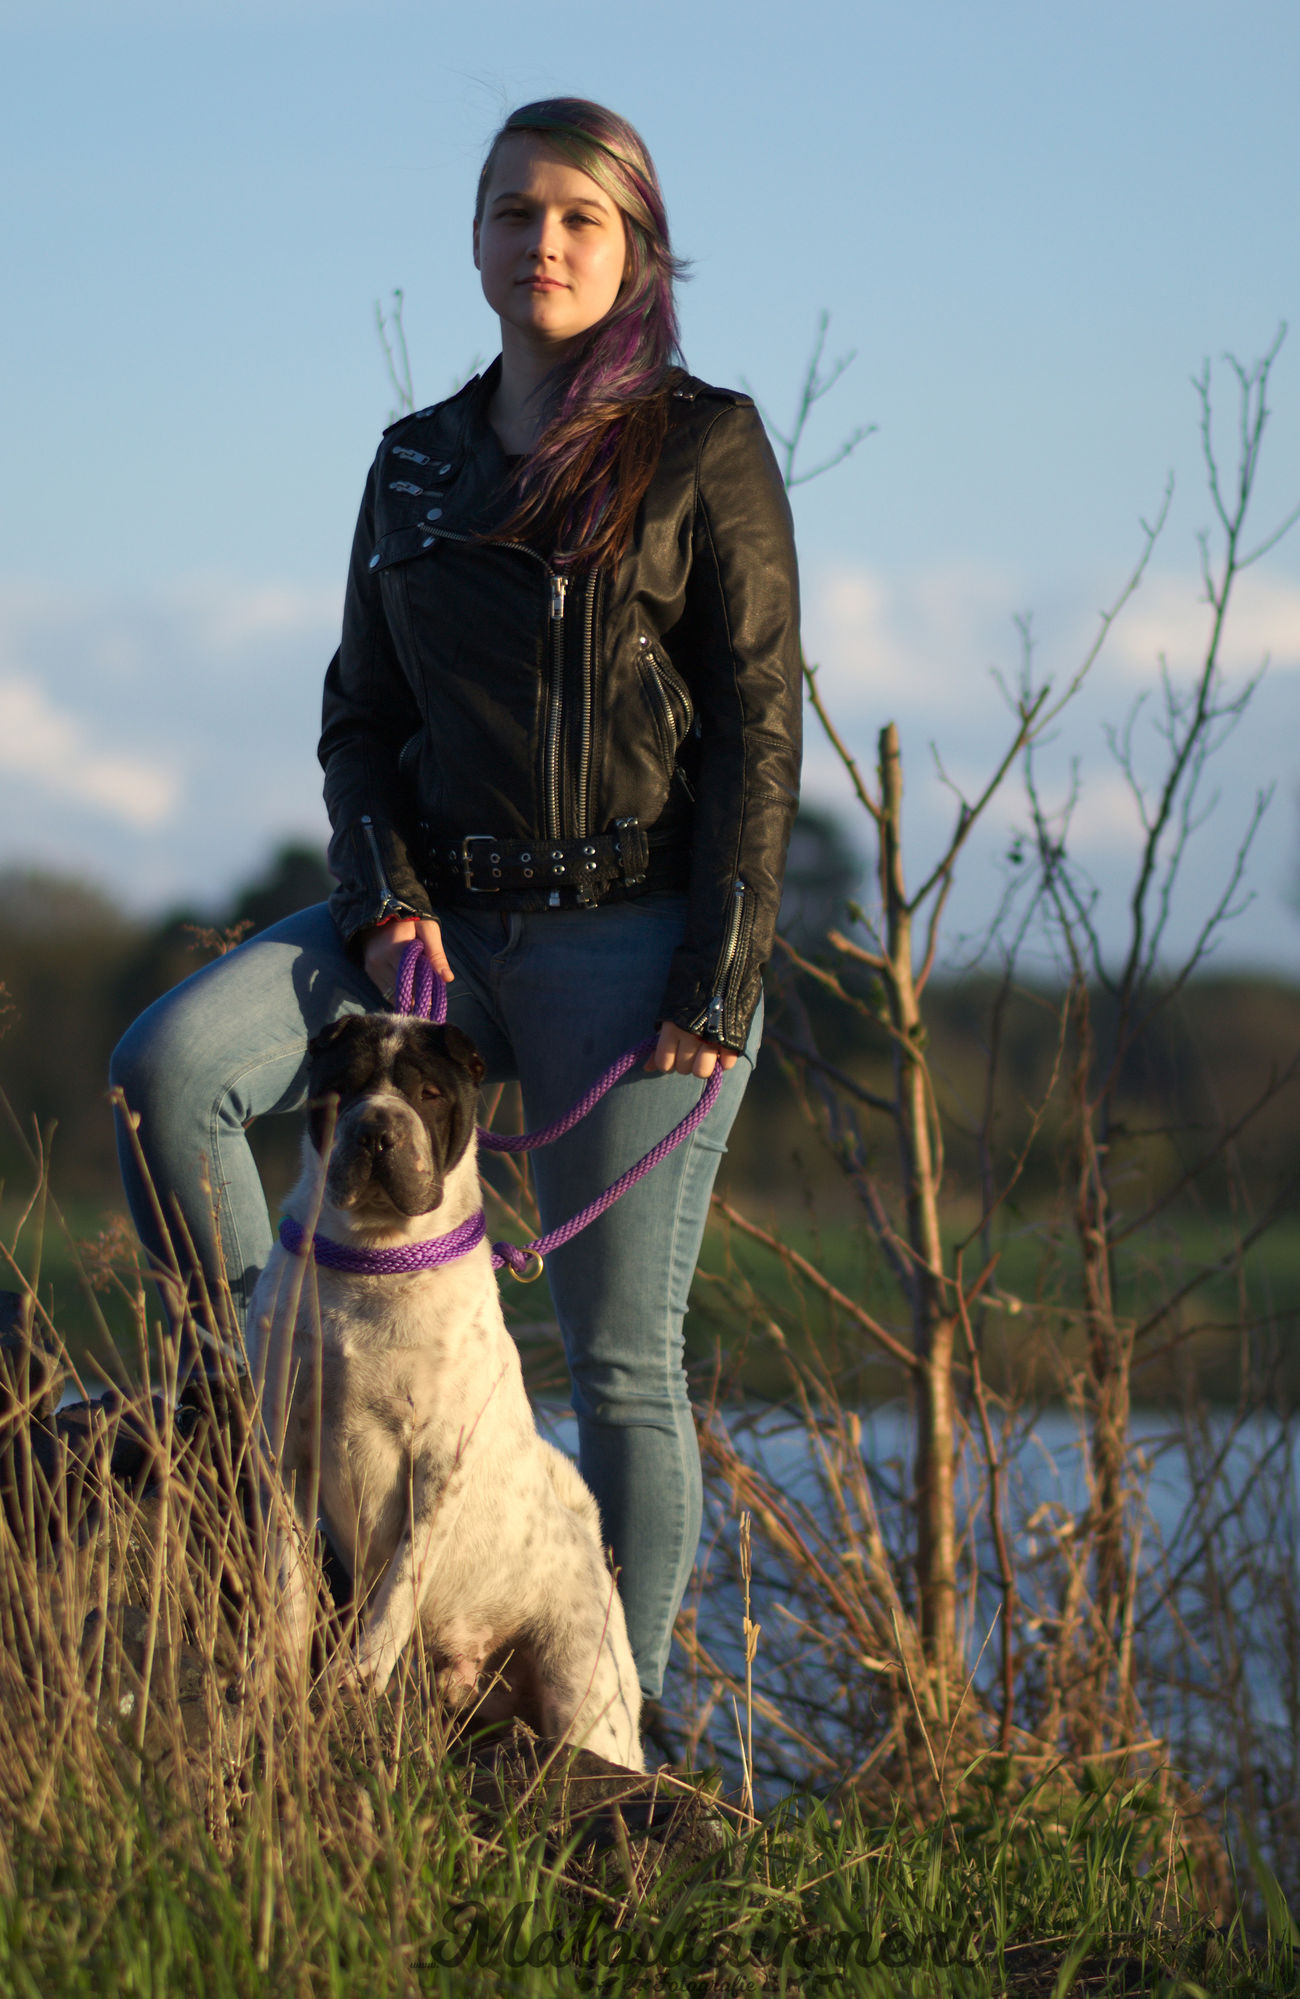 Dog Pets One Animal One Person One Woman Only Standing People Happiness Full Length Adults Only Outdoors Friendship Women Looking At Camera River Frau Hundefotografie Dog Photography Shar Pei Hund Hannover Celle Domestic Animals Adult Live For The Story